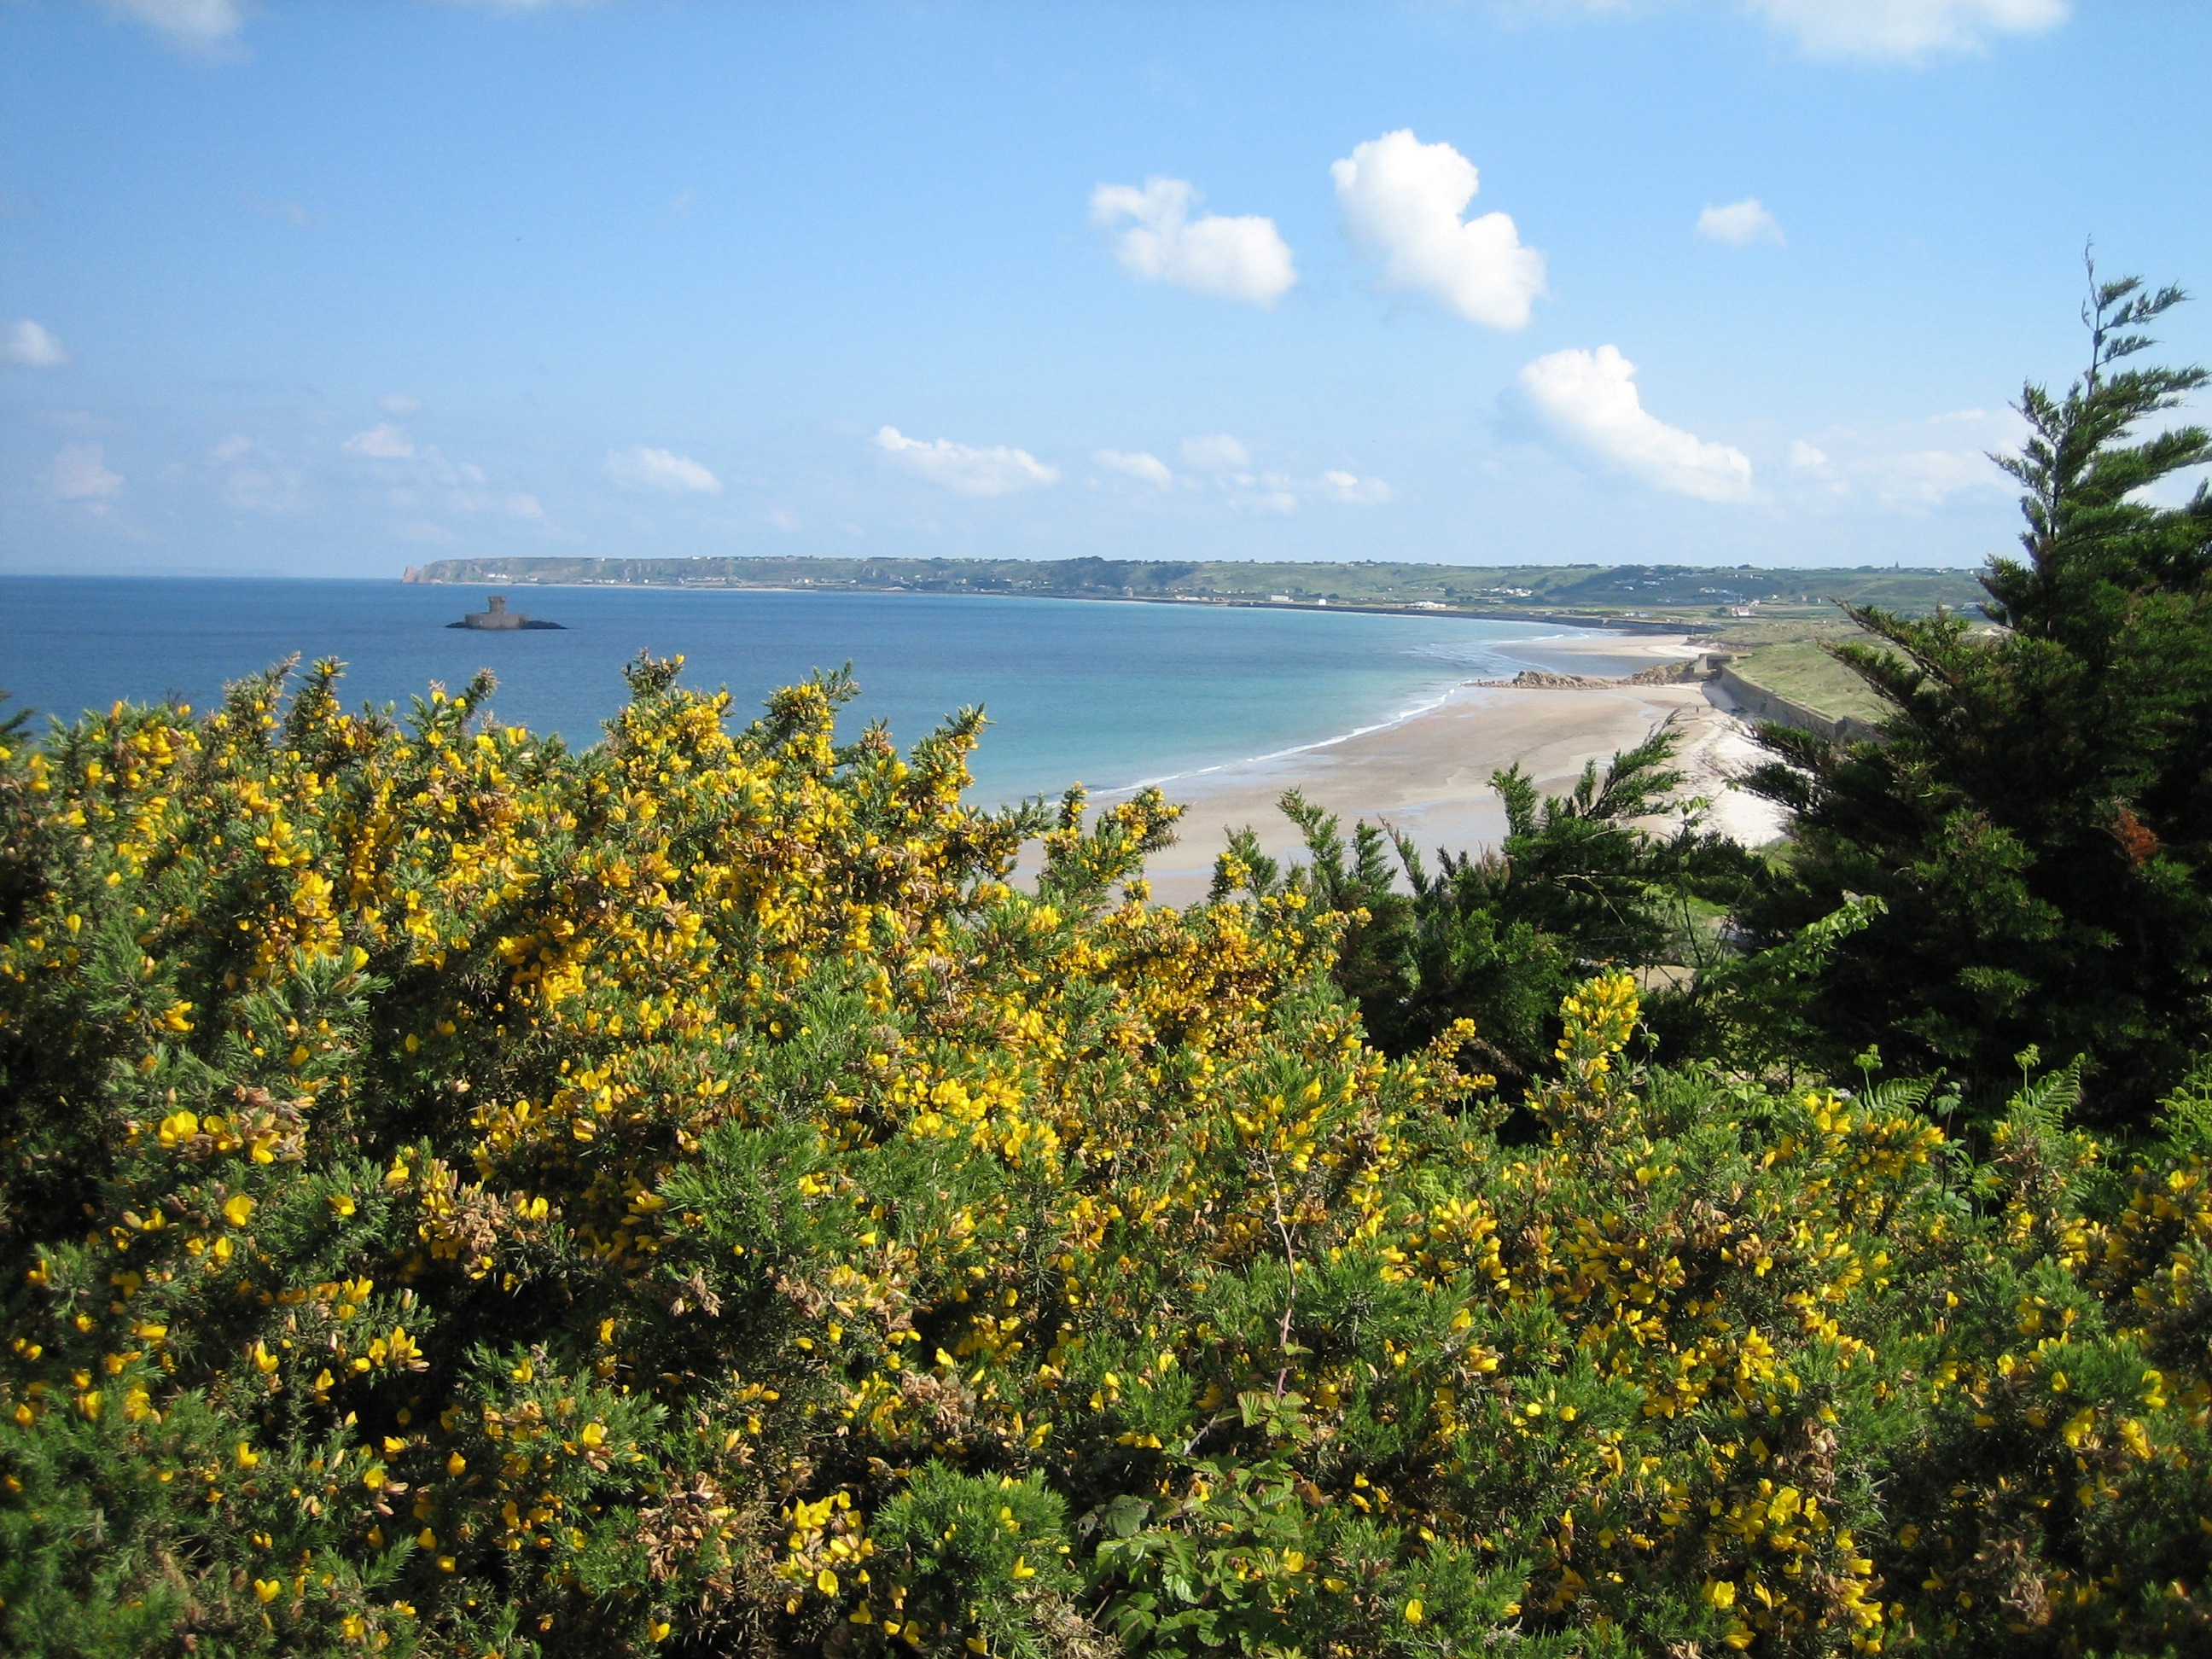 View from the south of St Ouen's Bay looking north